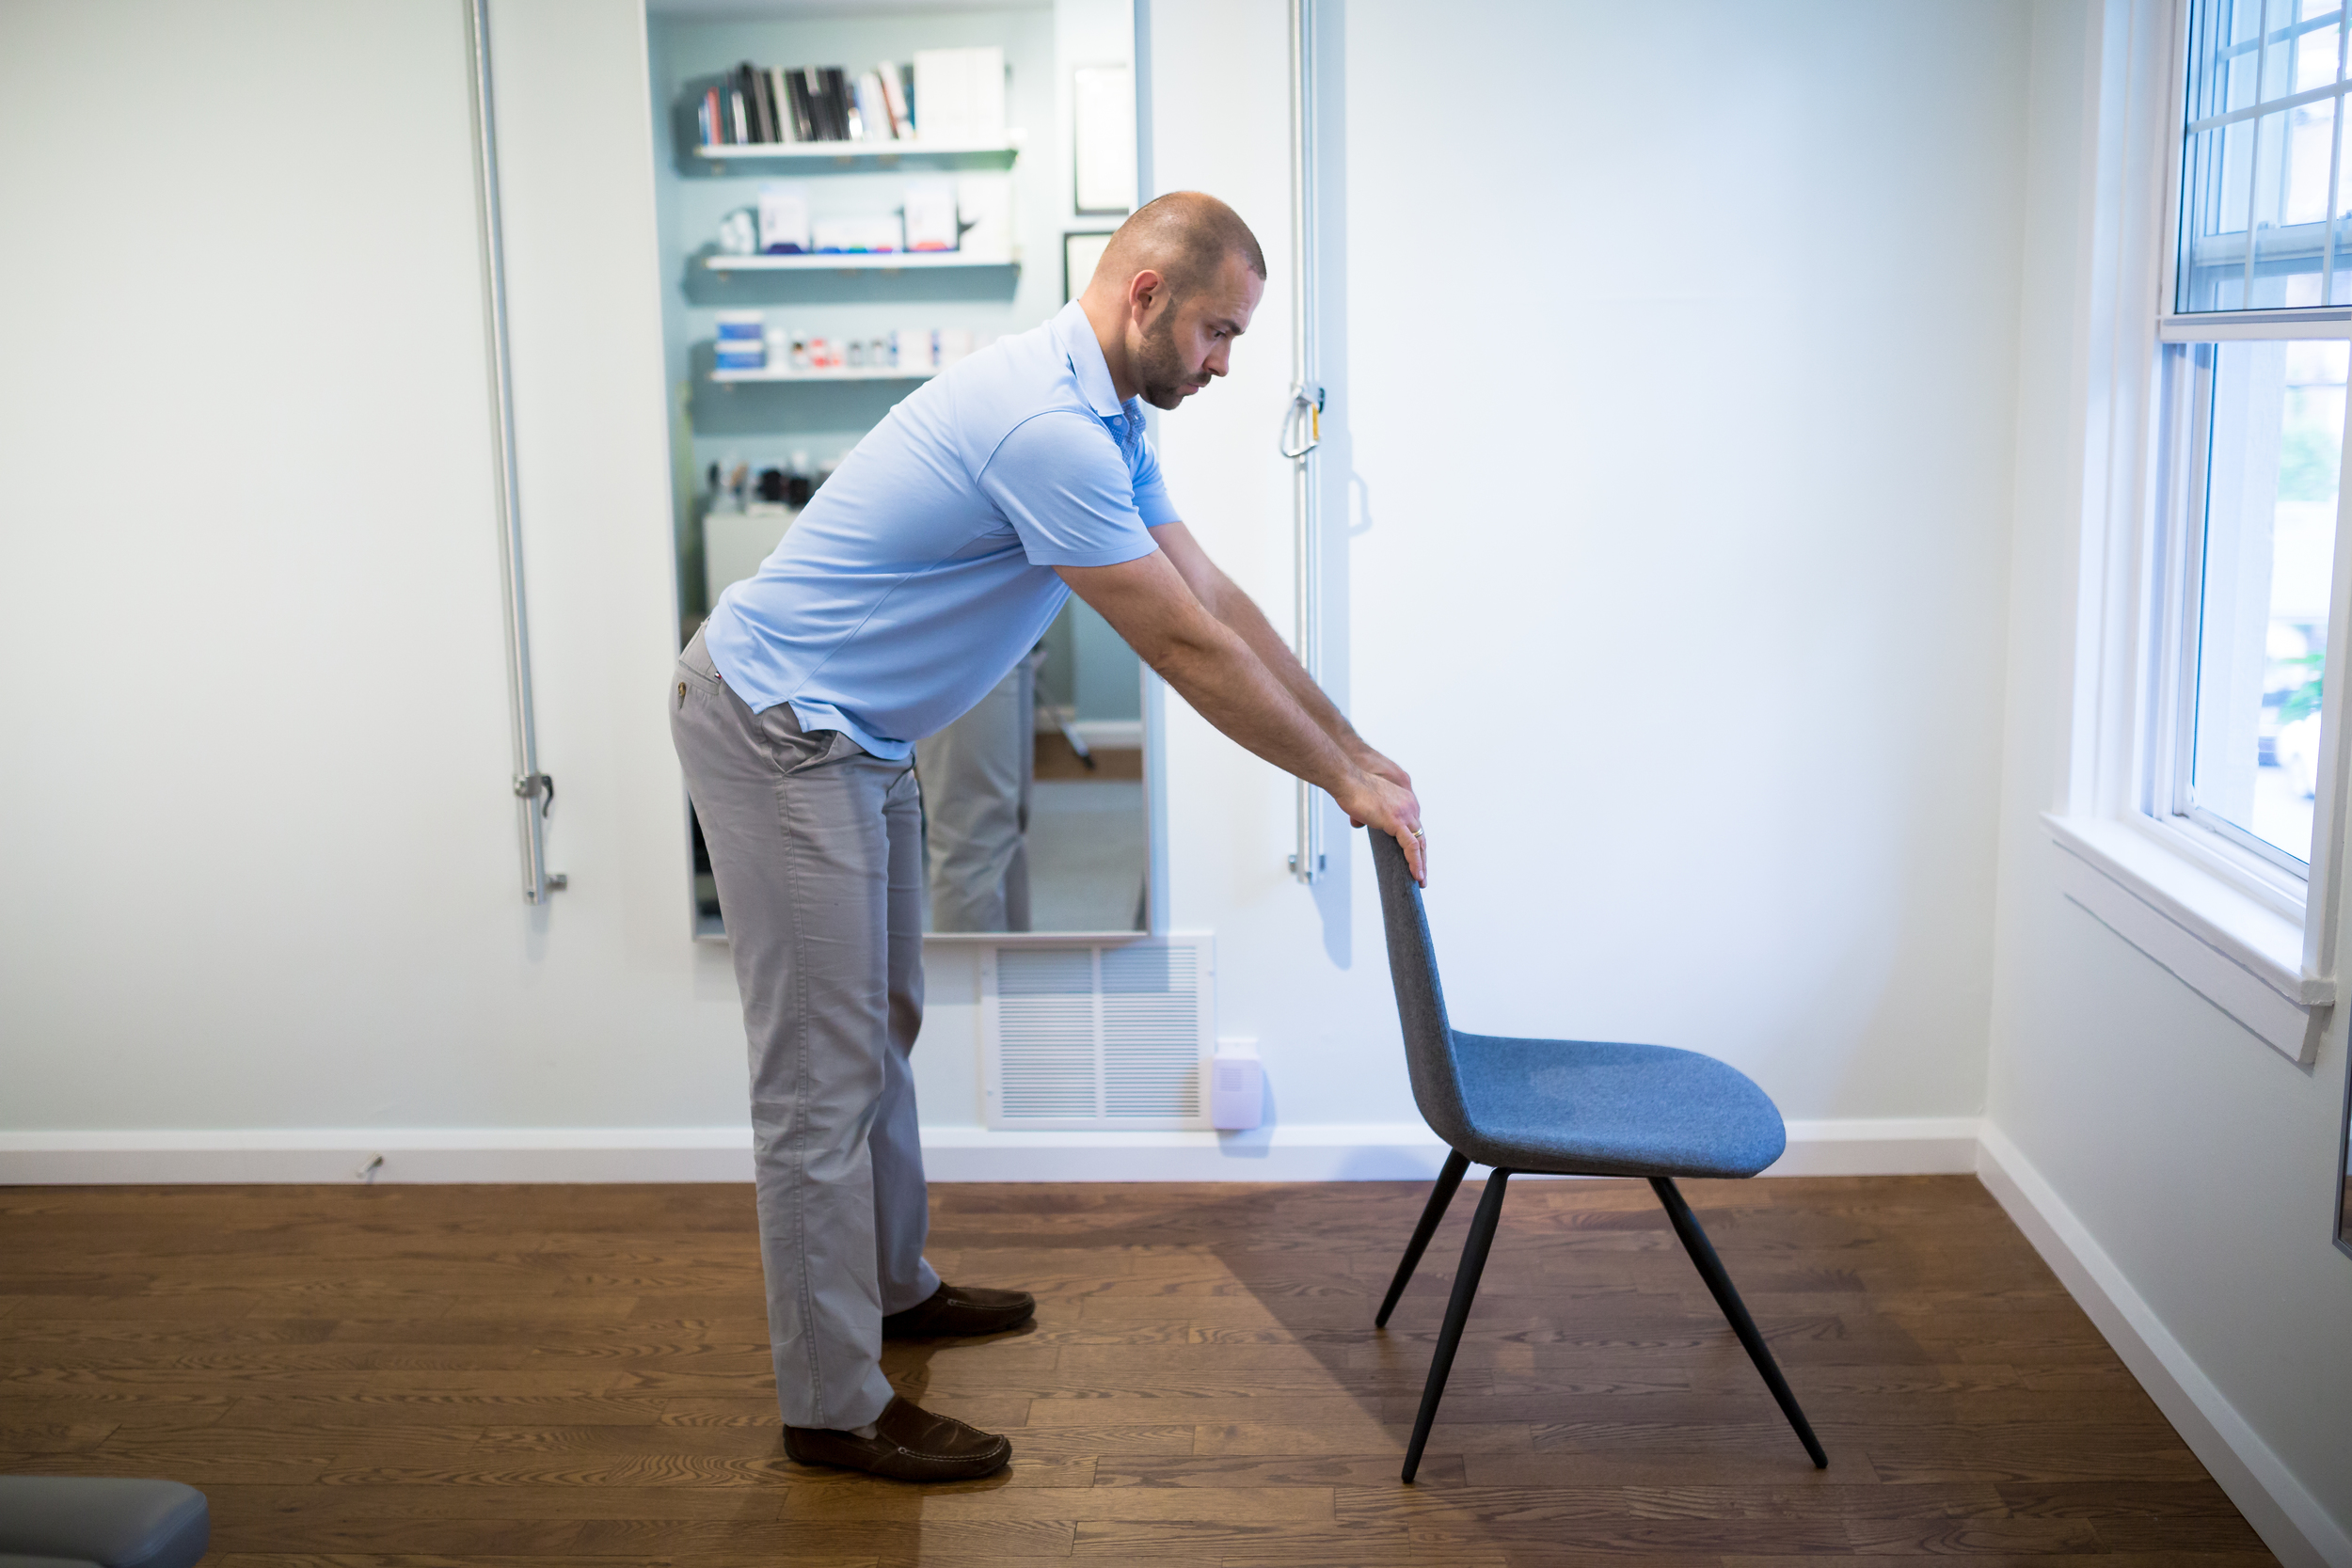 STEP 1:  Start by standing about one full arm length away from a chair. Place your hands on the chair with your feet hip width apart.